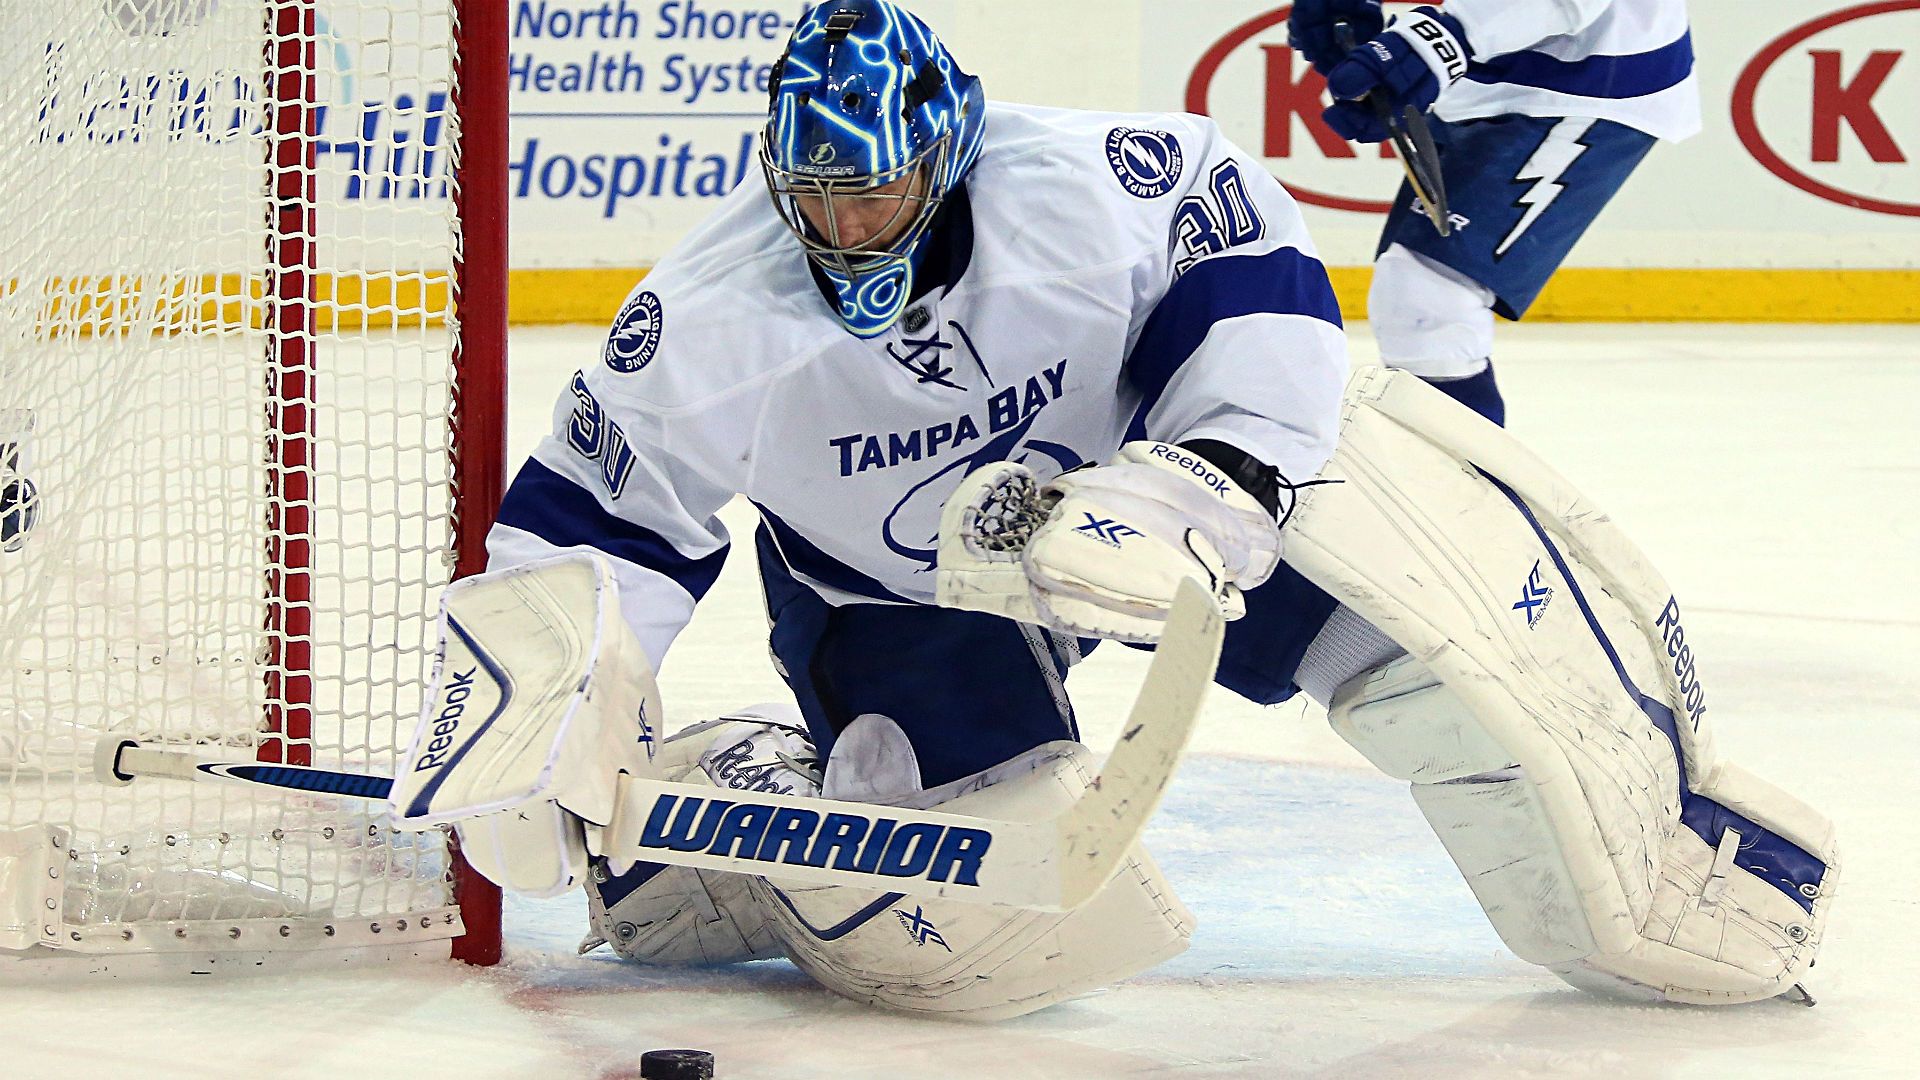 Eastern Conference finals: Bishop shuts out Rangers again to give Lightning Game 7 win